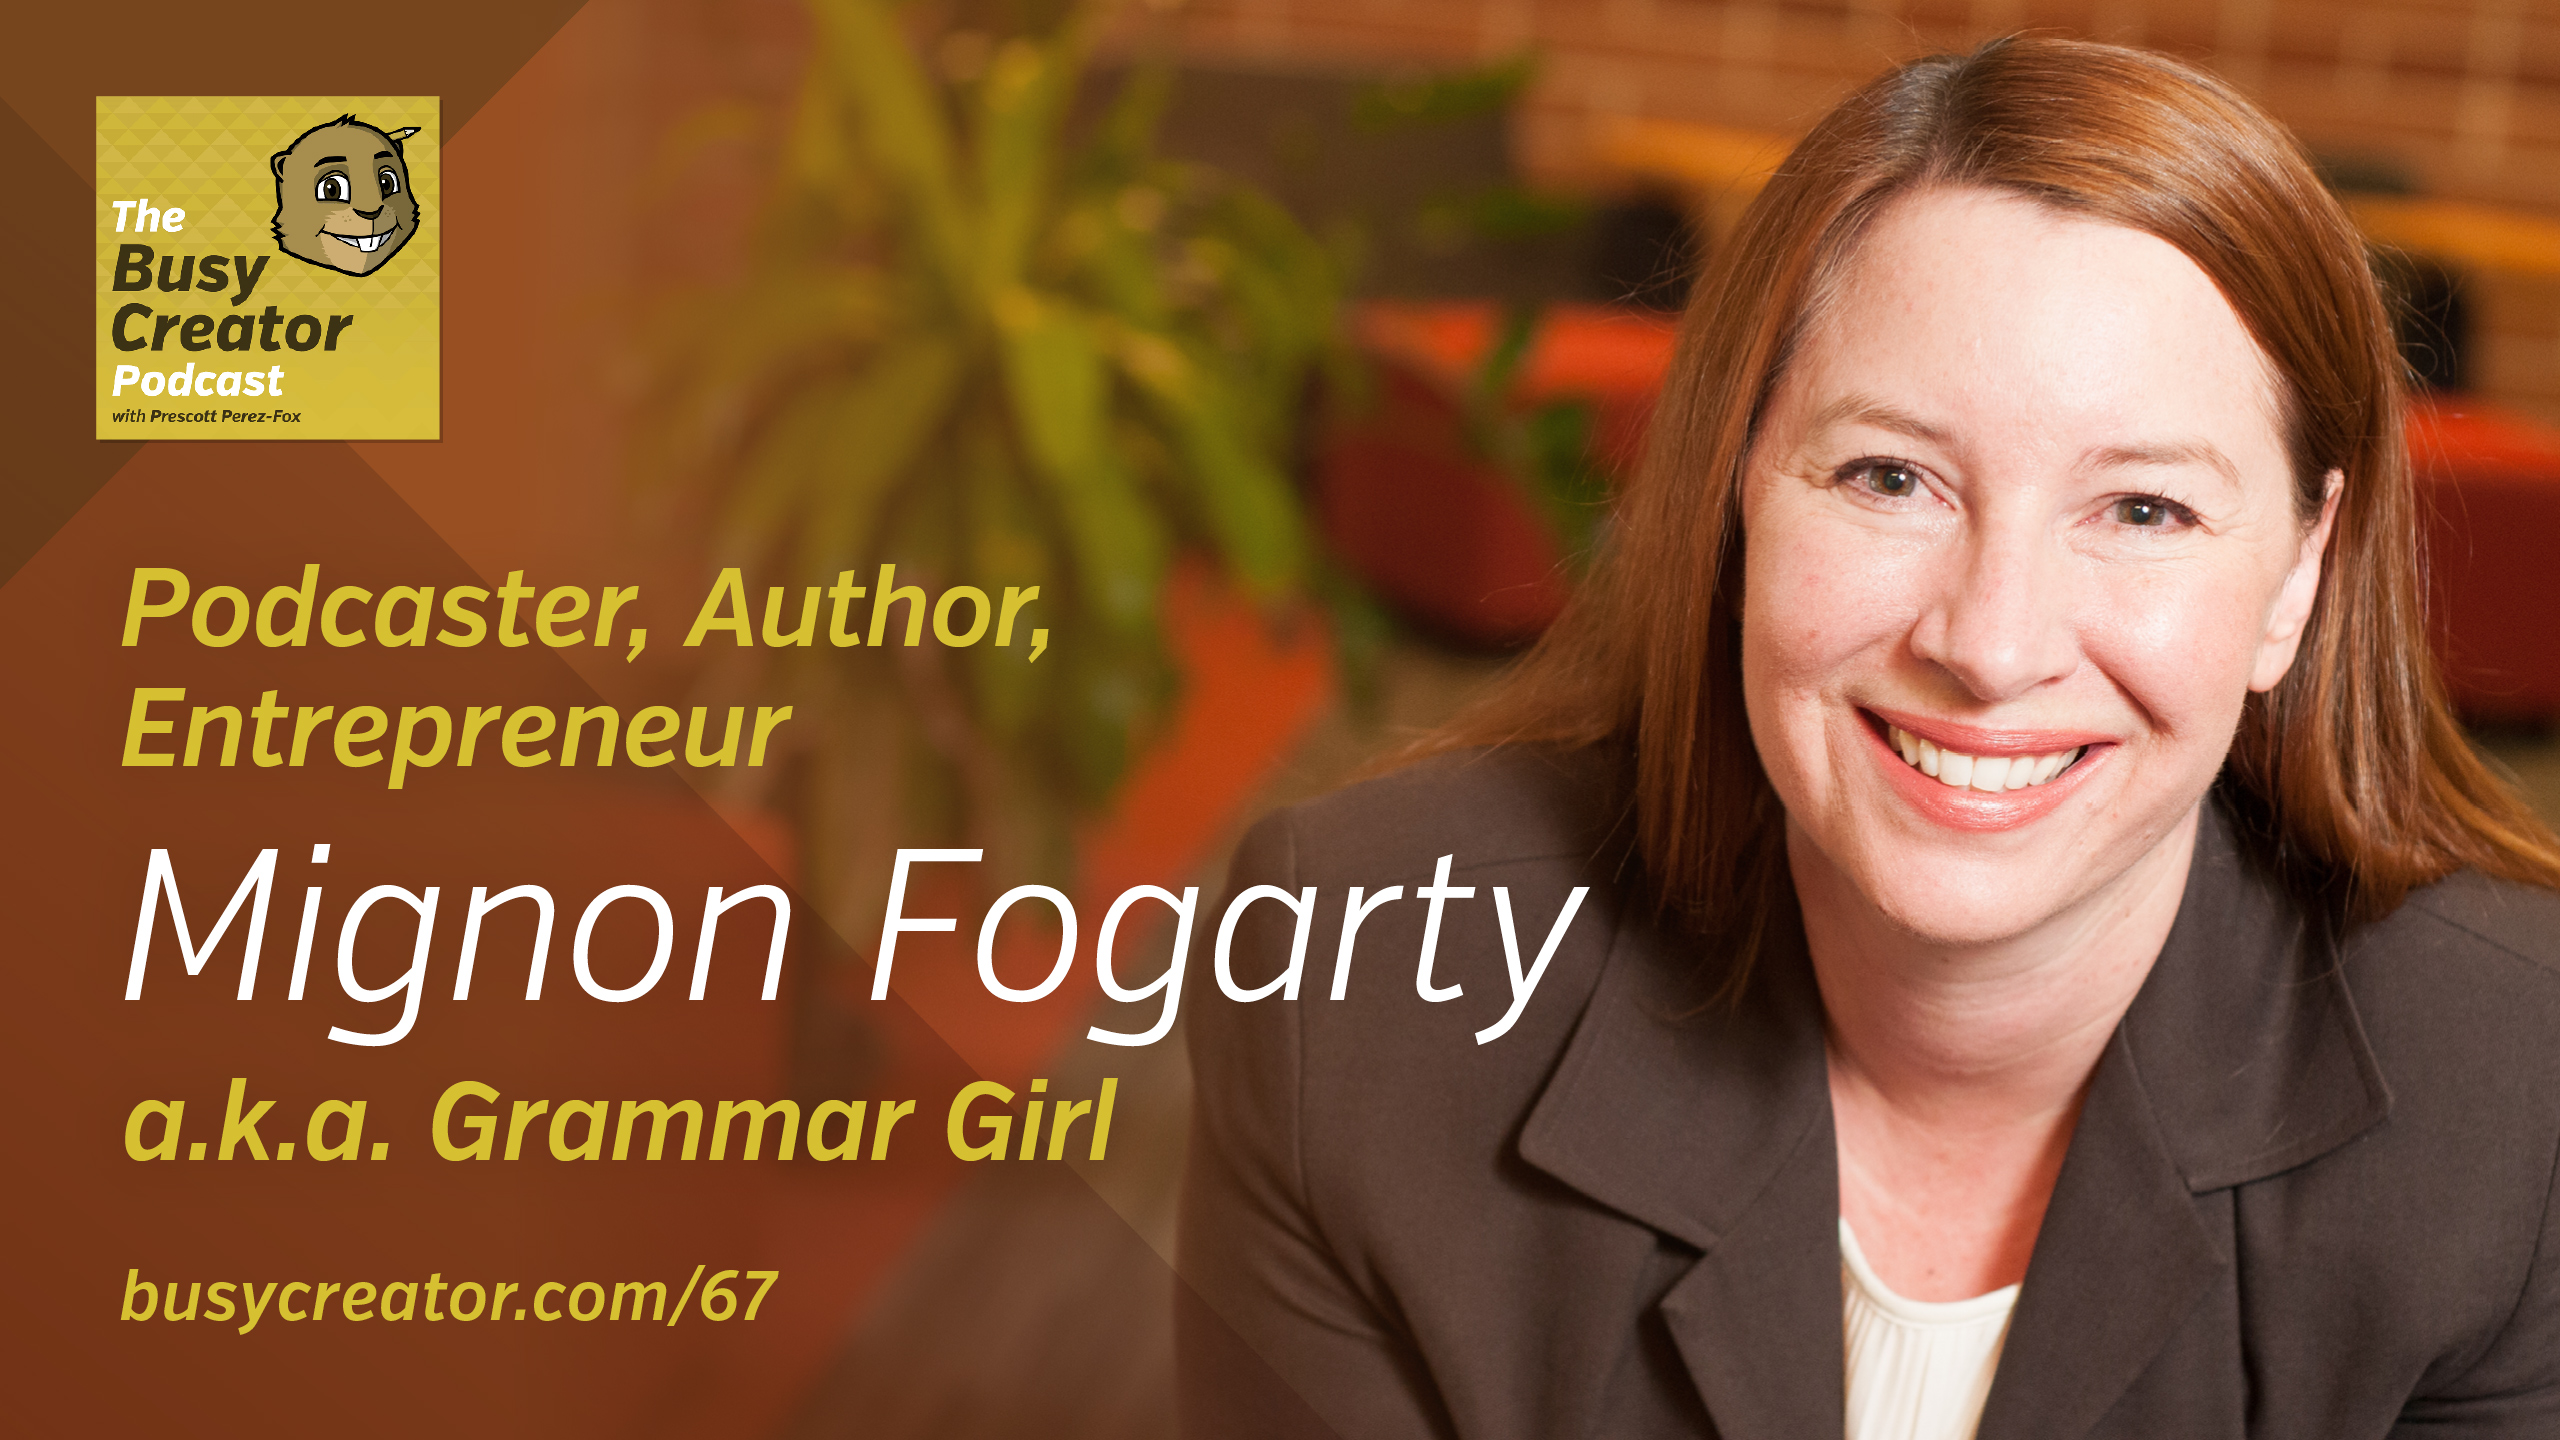 Re-Issue: How Mignon Fogarty Launched a World-Famous Podcast Network and Became Grammar Girl - The Busy Creator Podcast 67